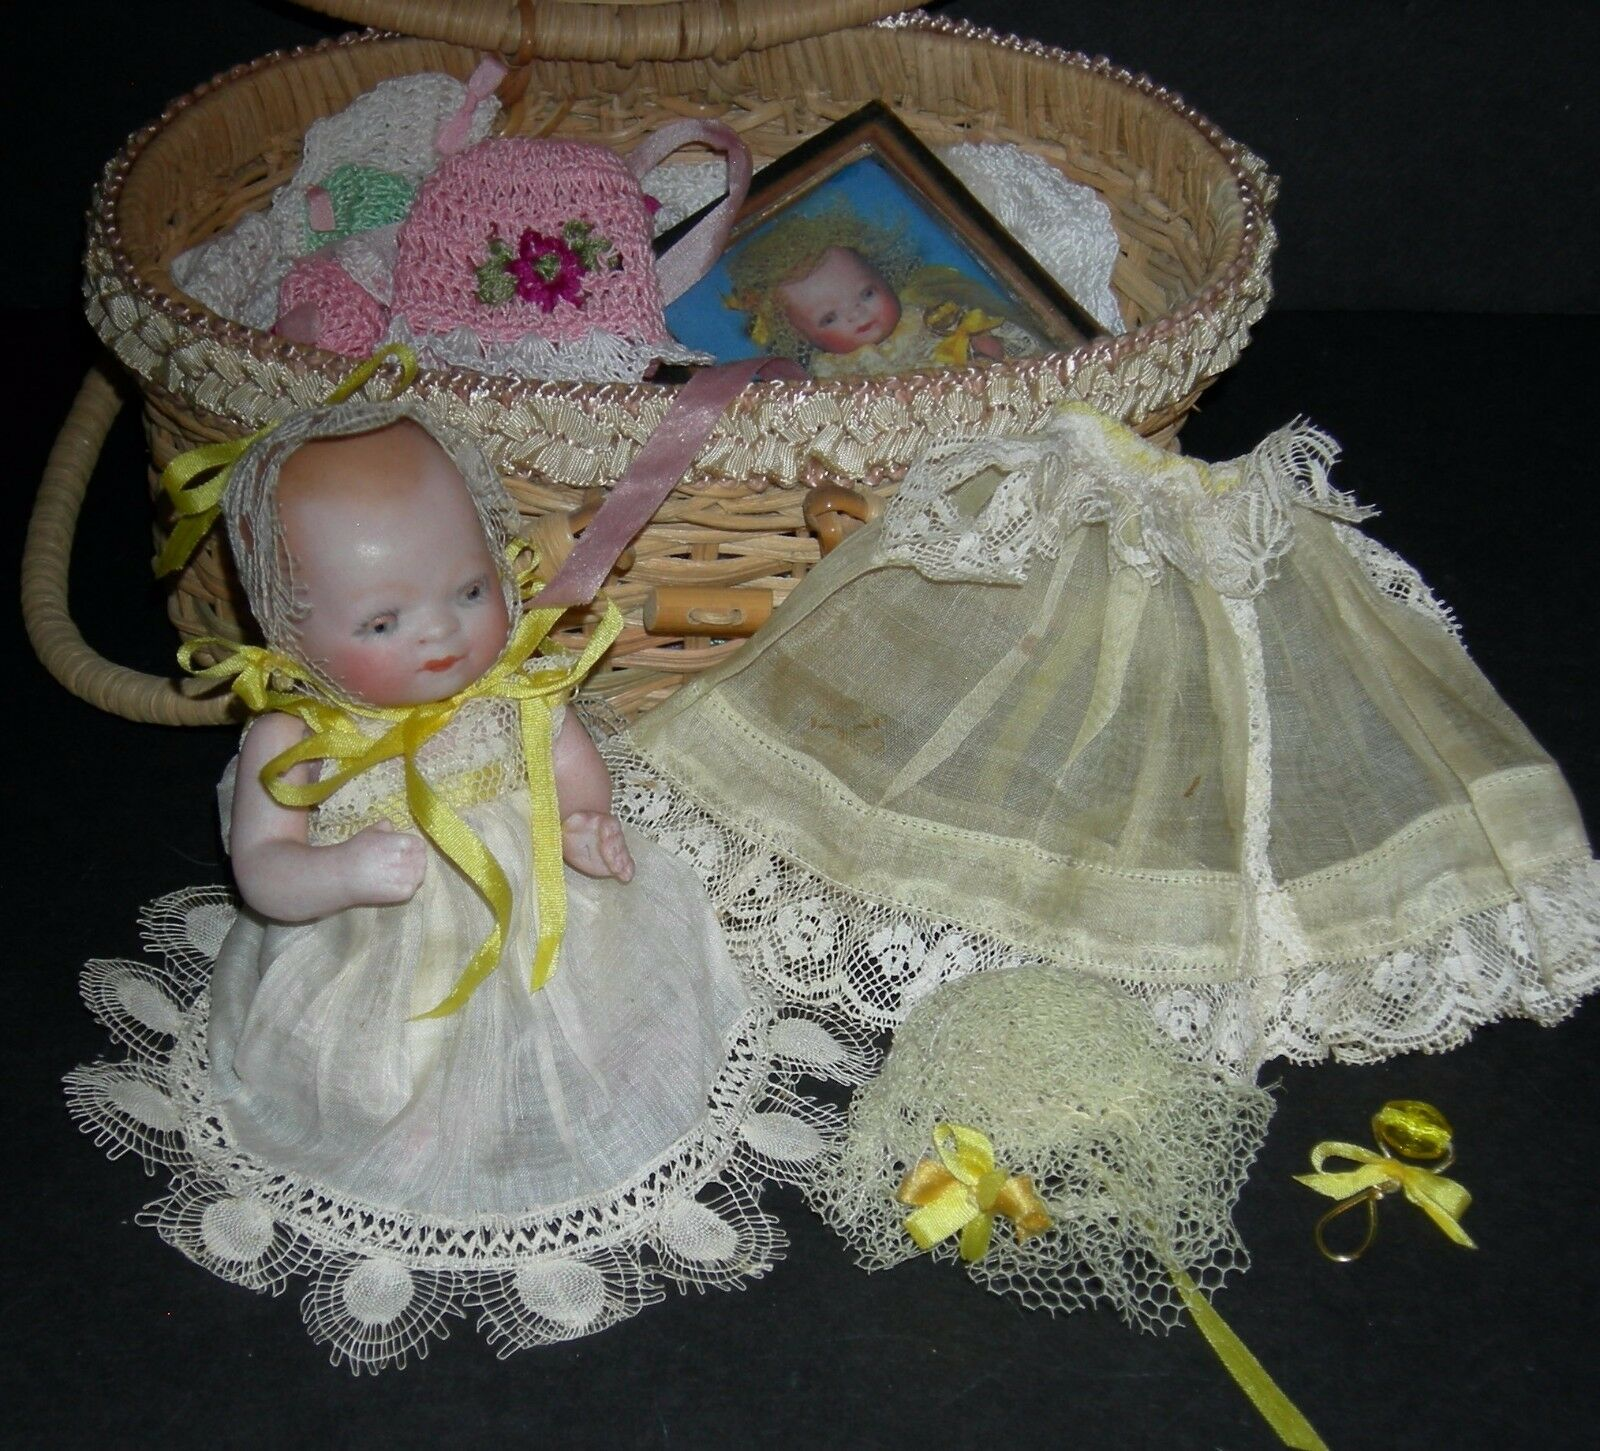 BISQUE BYE-LO BABY - w  OLD BASKET & CLOTHES & ACCESSORIES - 5  - GRACE S PUTNAM